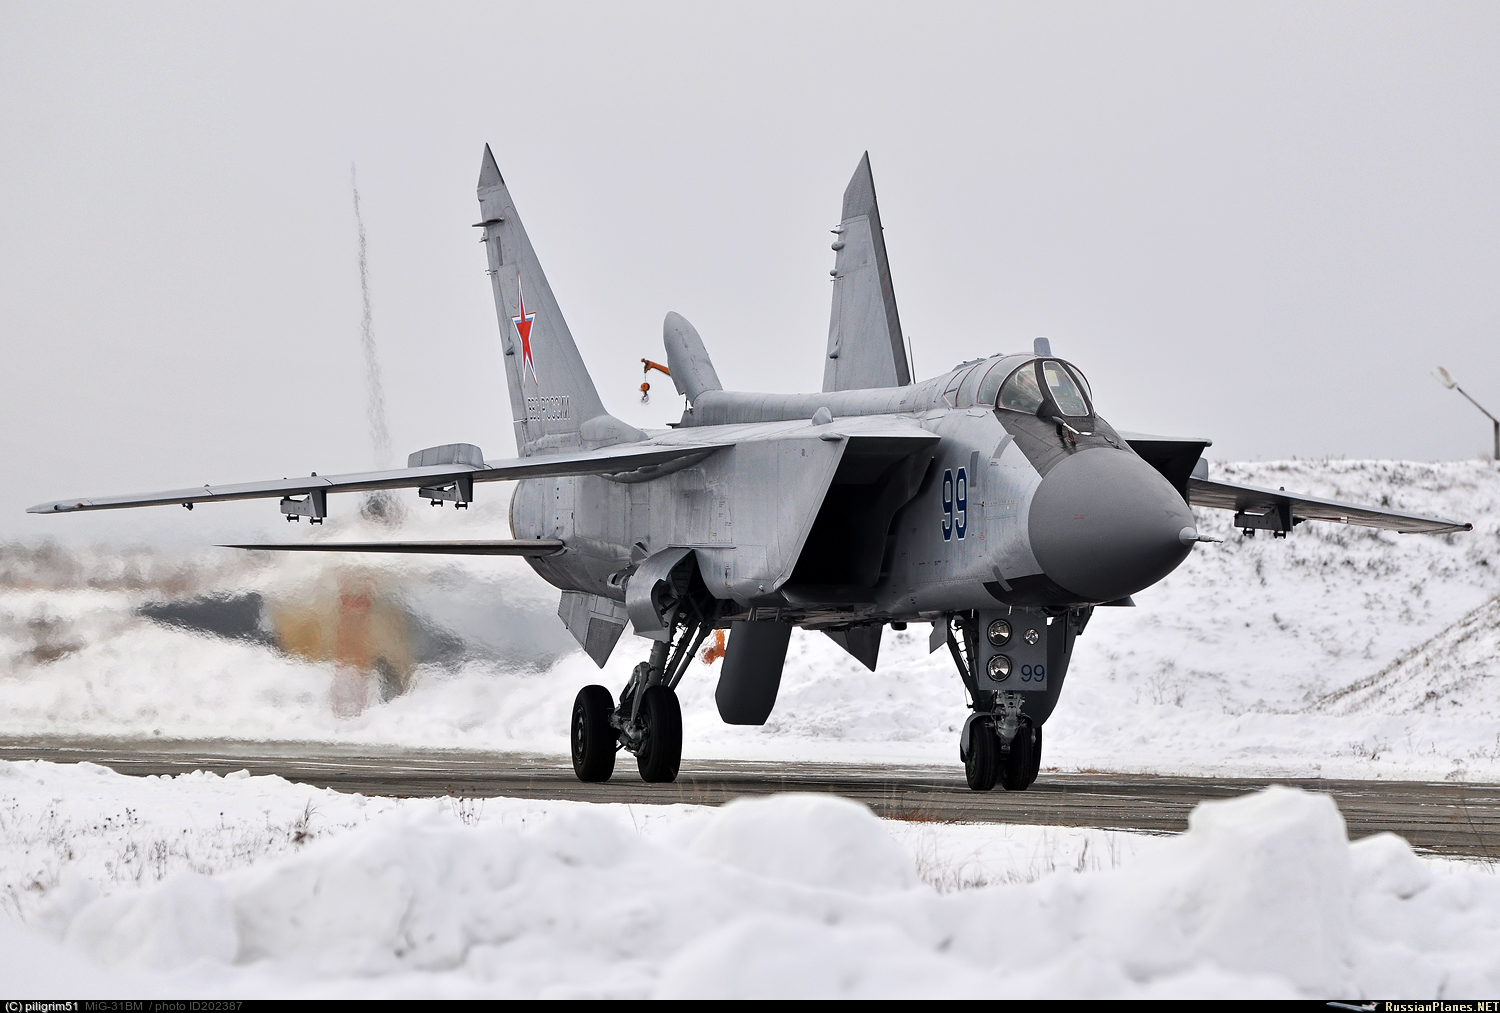 http://russianplanes.net/images/to203000/202387.jpg